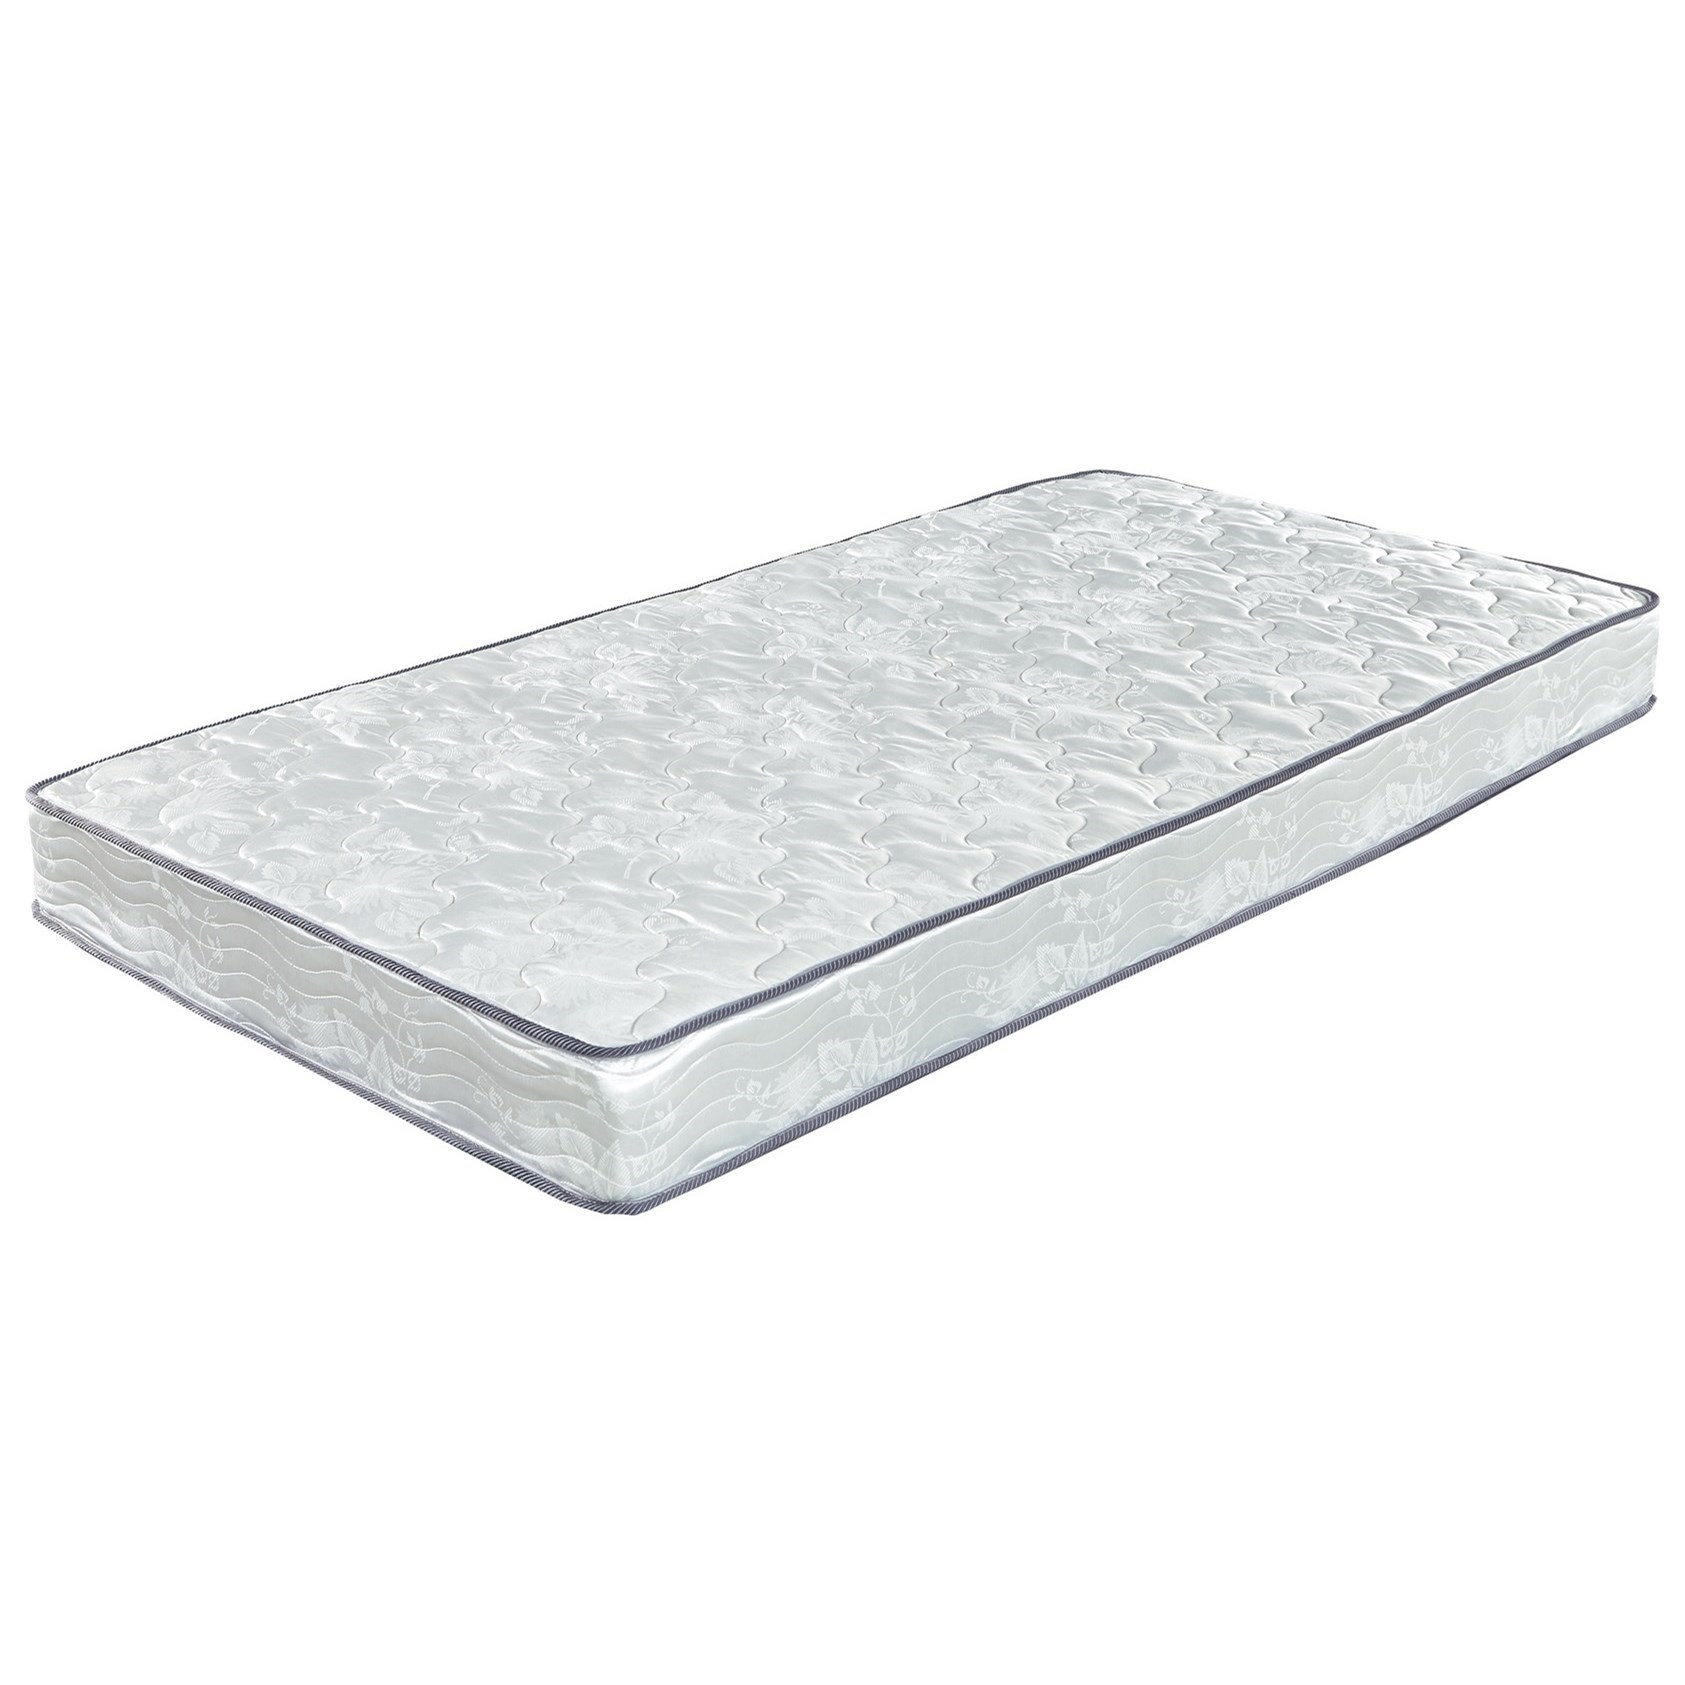 M963 Firm Full Innerspring Mattress by Sierra Sleep at Ruby Gordon Home